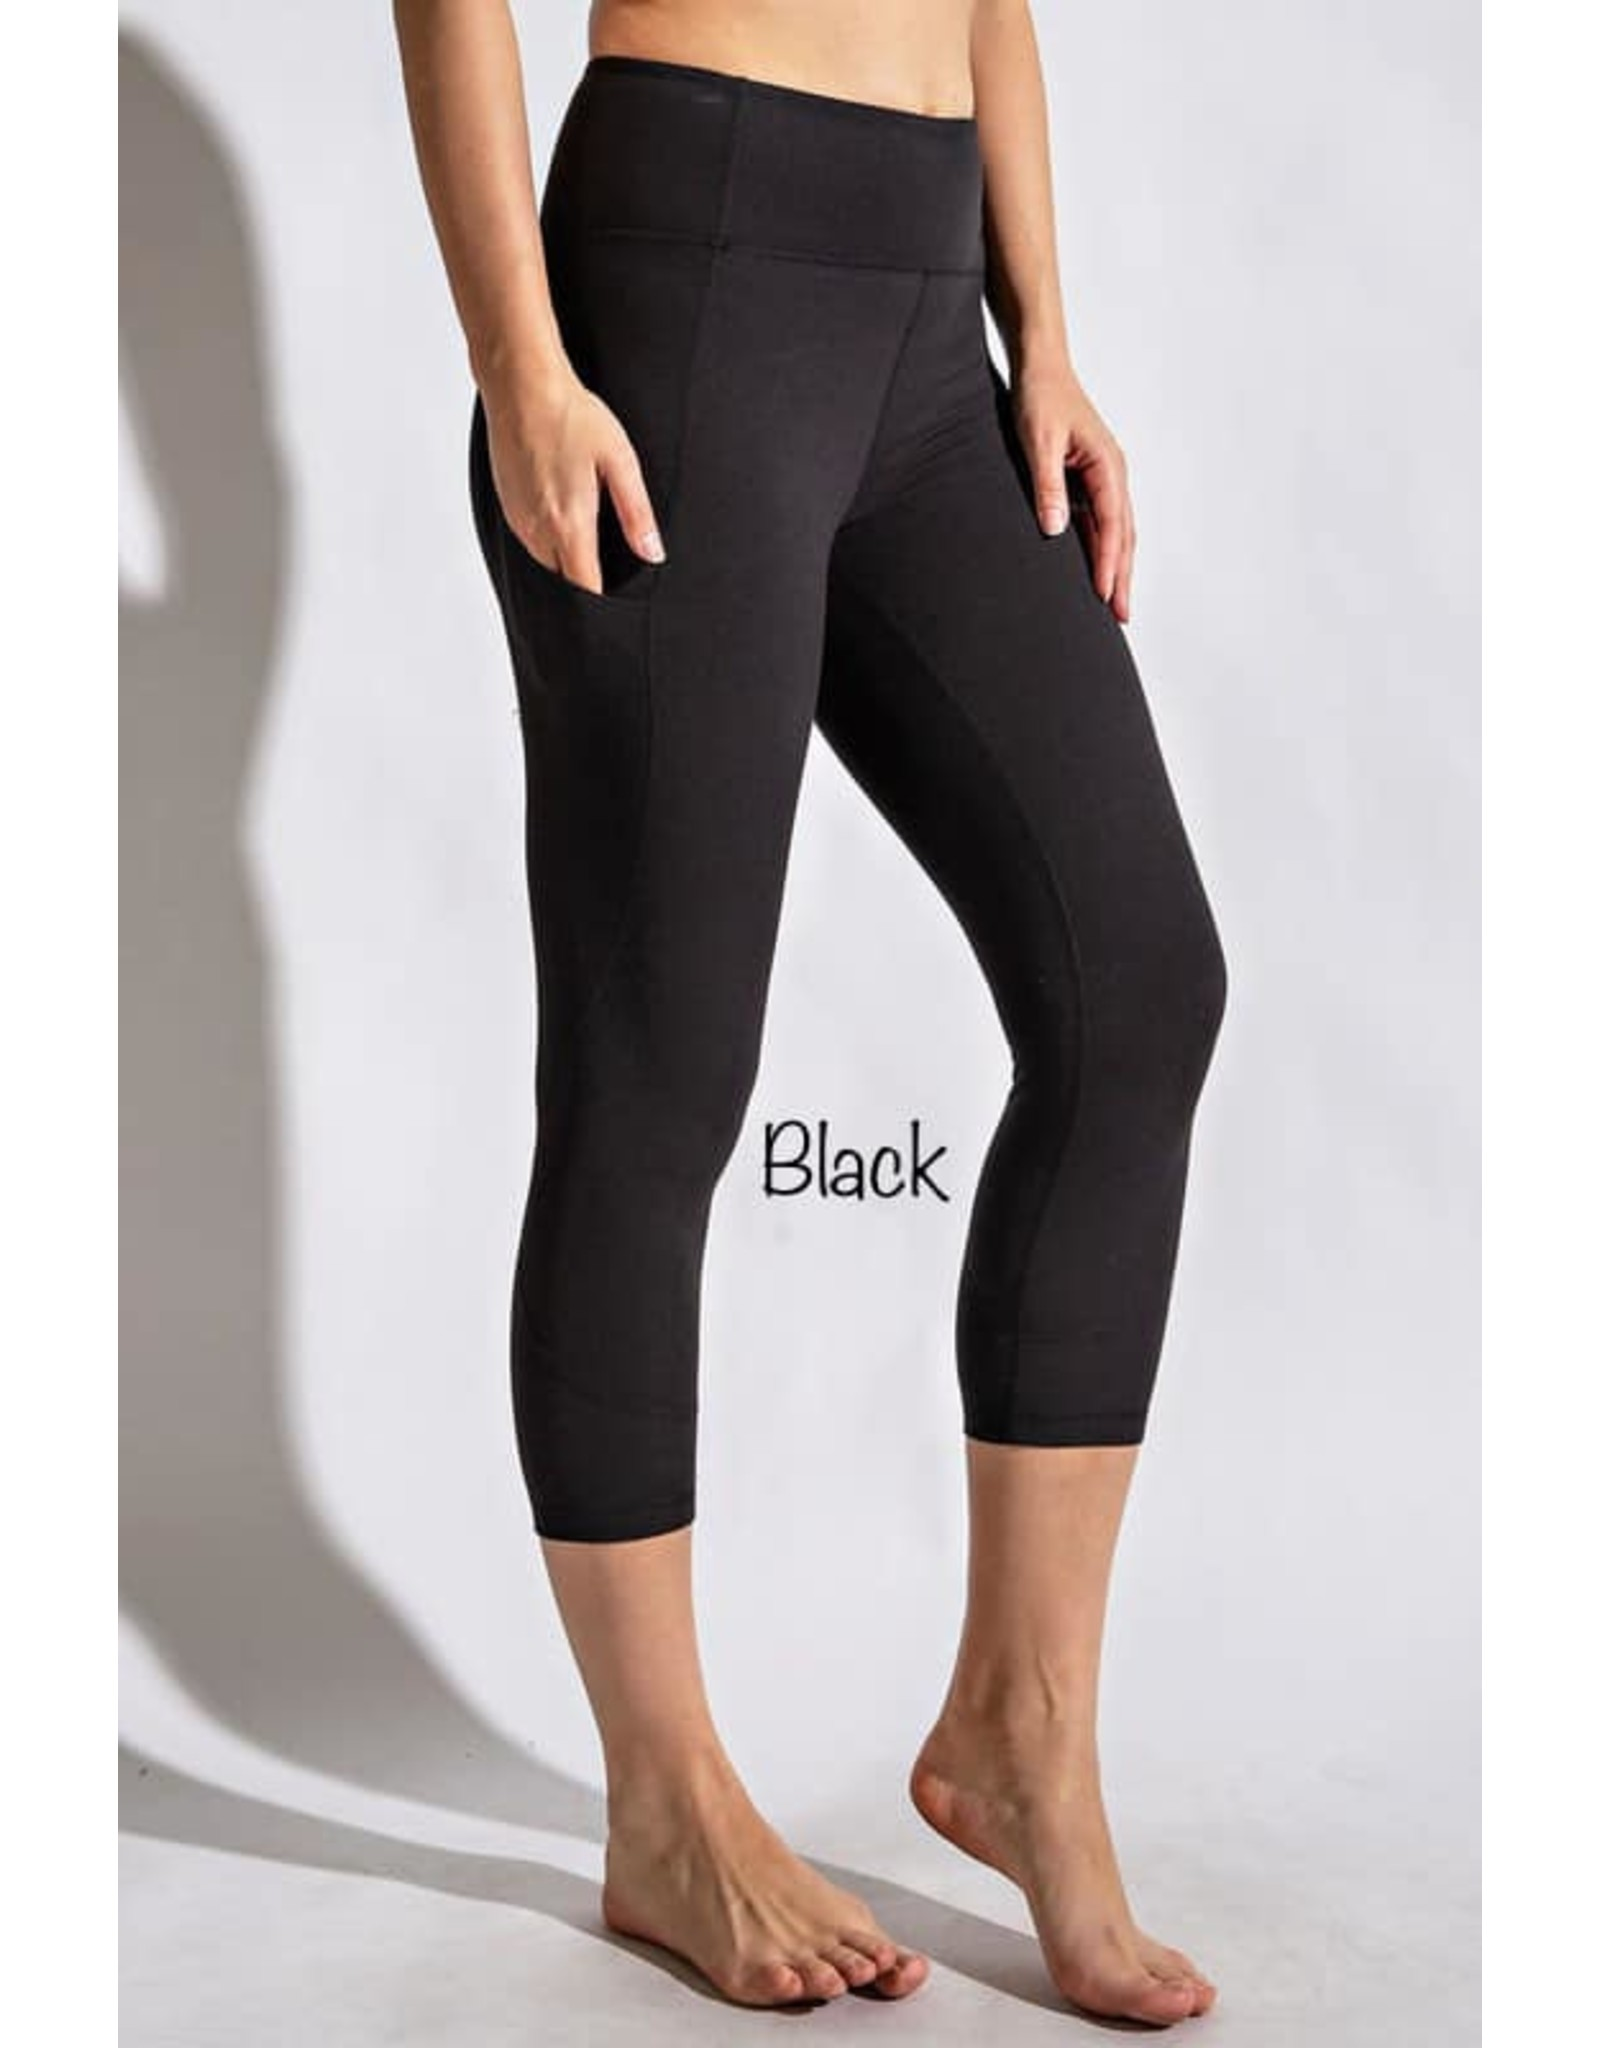 Capri Buttery Soft Leggings With Pockets